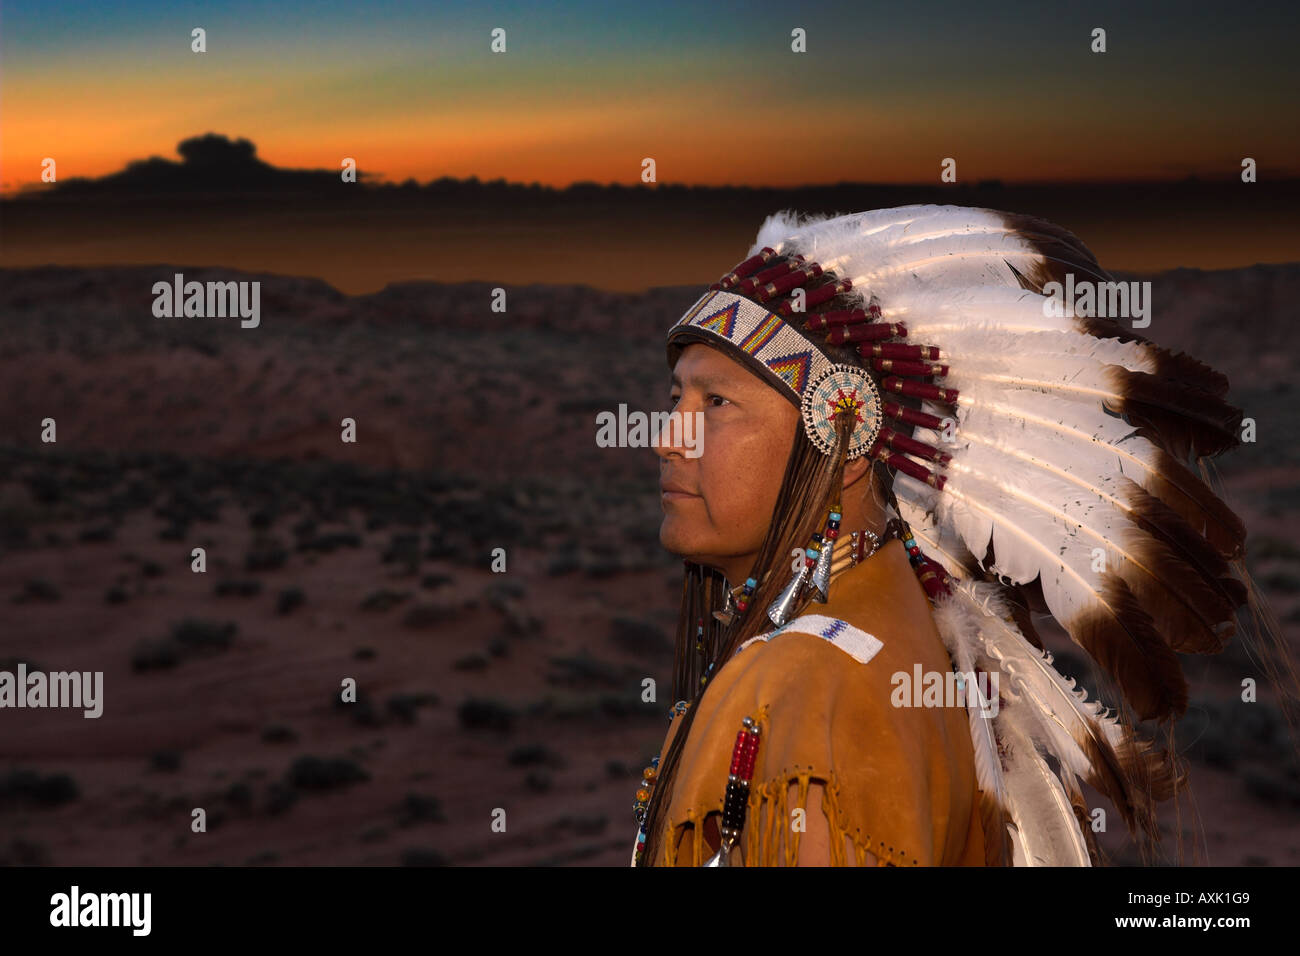 Native American Indian man with cultural outfit uniform headdress feathers design patterns leather band nature sunset sunrise - Stock Image